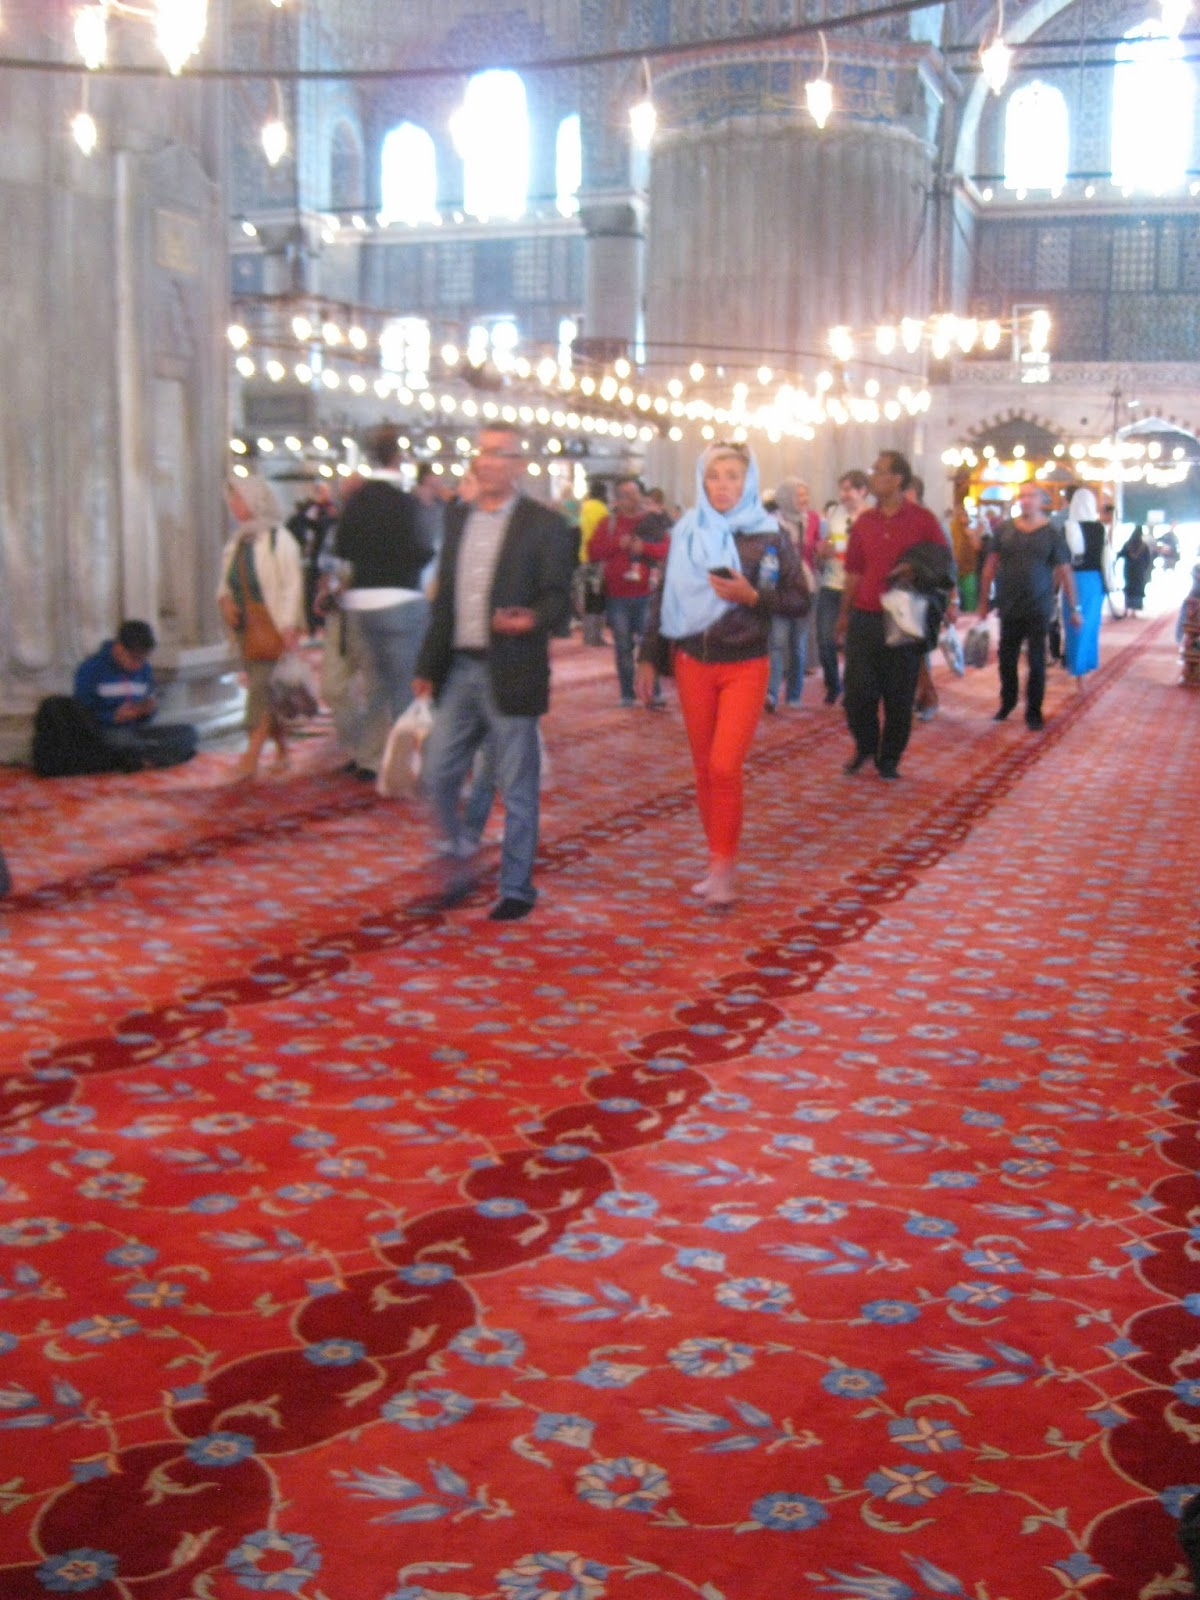 Istanbul - The carpet inside is colorful and very comfortable